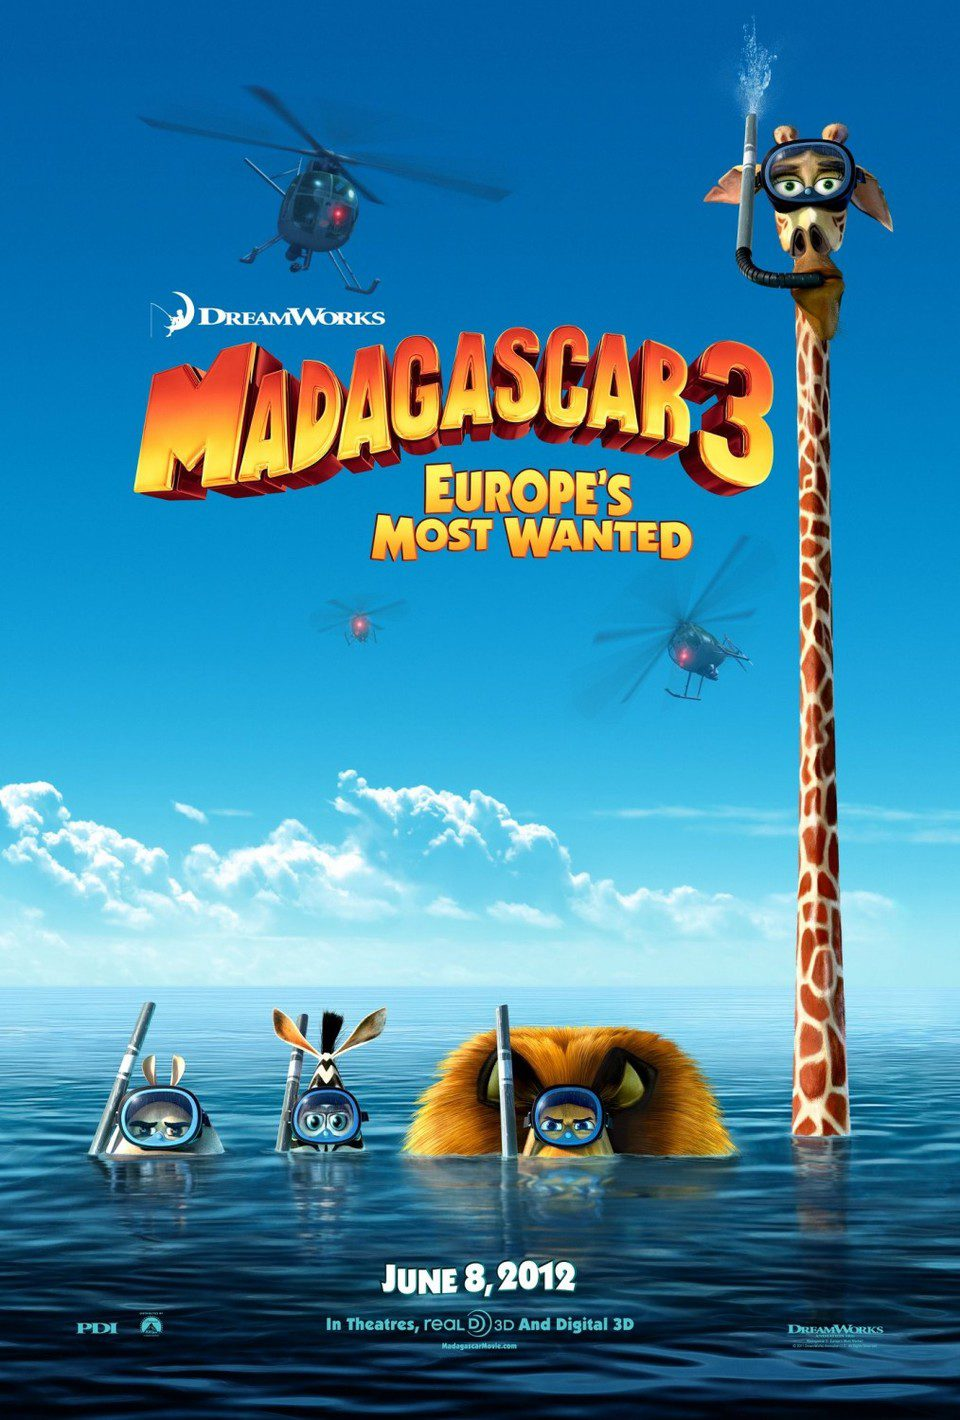 EEUU poster for Madagascar 3: Europe's Most Wanted